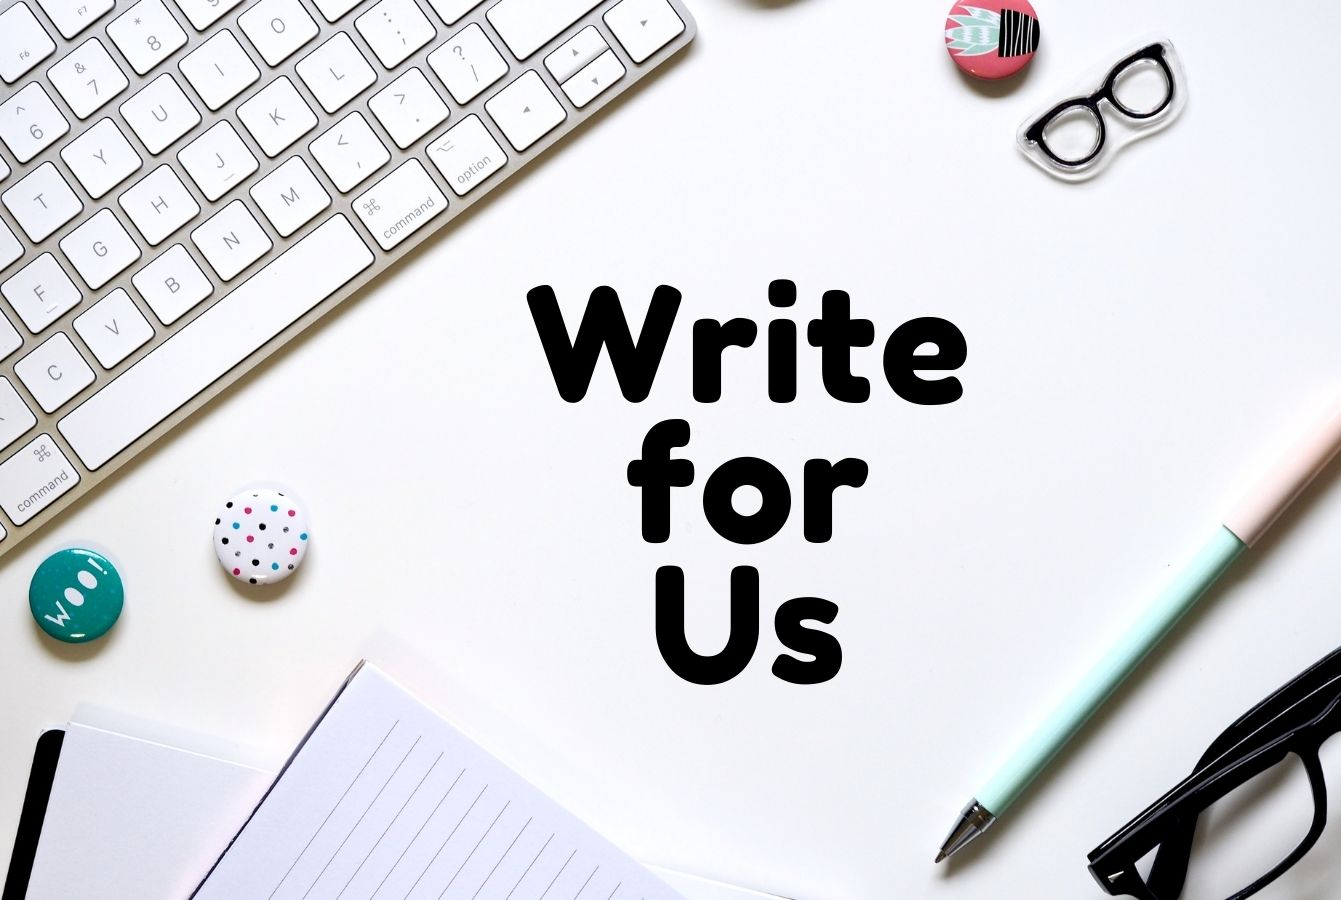 write about us, get paid to write, guest post,guest posting,guest blogging,guest posts,guest post outreach,how to guest post,guest posting sites,guest blog post,guest post backlinks,guest post link building,free guest post,guest posting sites list,guest post pitch,guest blogging sites,guest posting seo,guest blog,guest posts for seo,how to write a guest post,link building guest posting,guest posting tutorial bangla,guest blogging seo,how to write a guest blog post,how to guest blog,guest post seo